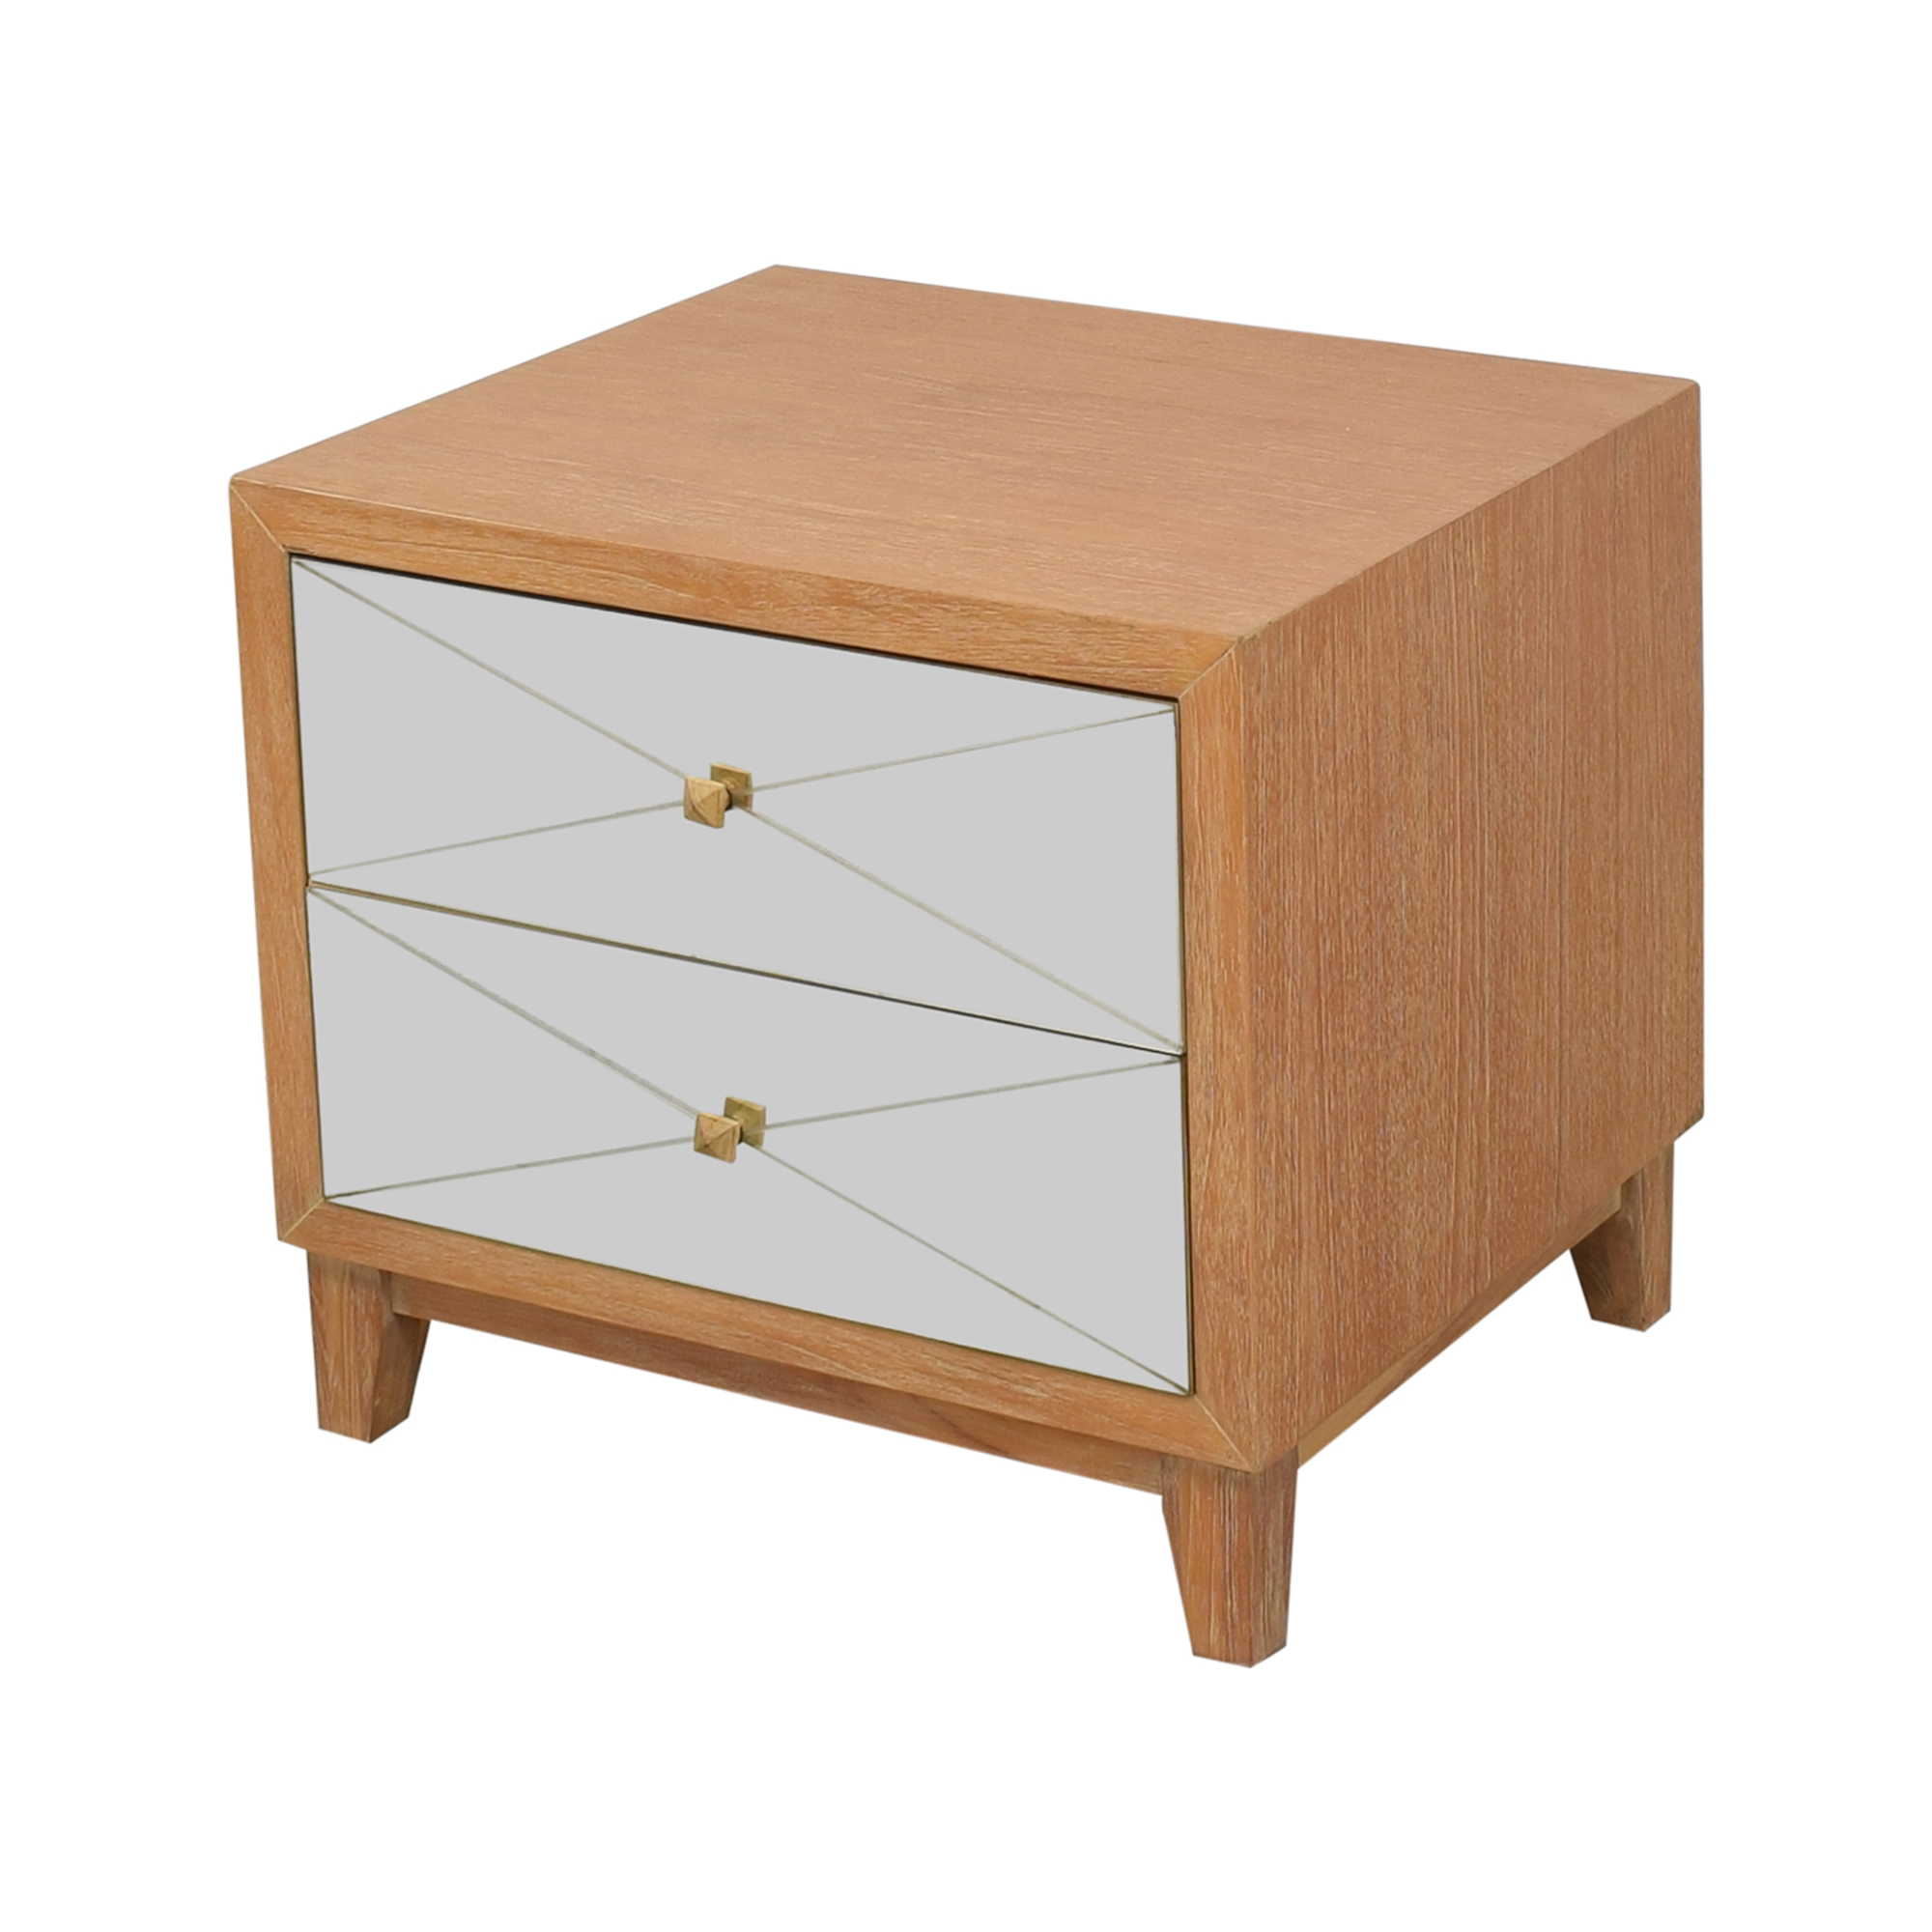 Brownstone Furniture Mirrored Nightstand / Tables